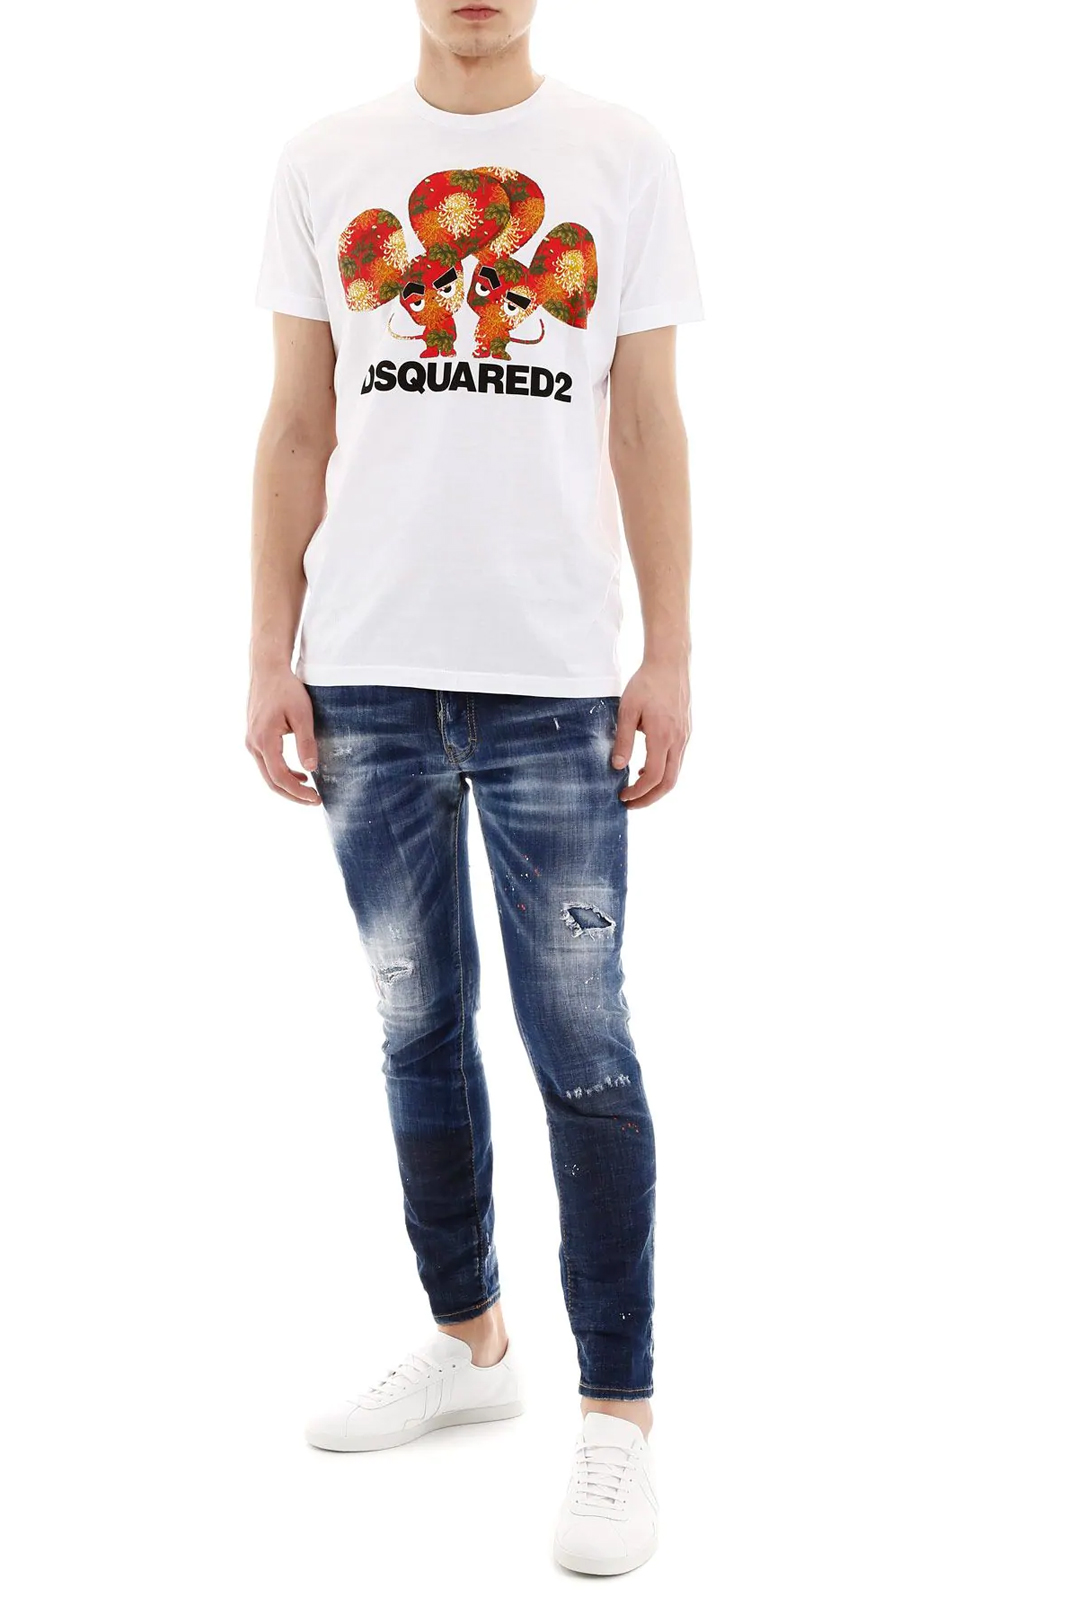 Tee-shirts  Dsquared2 S74GD0654 100 WHITE